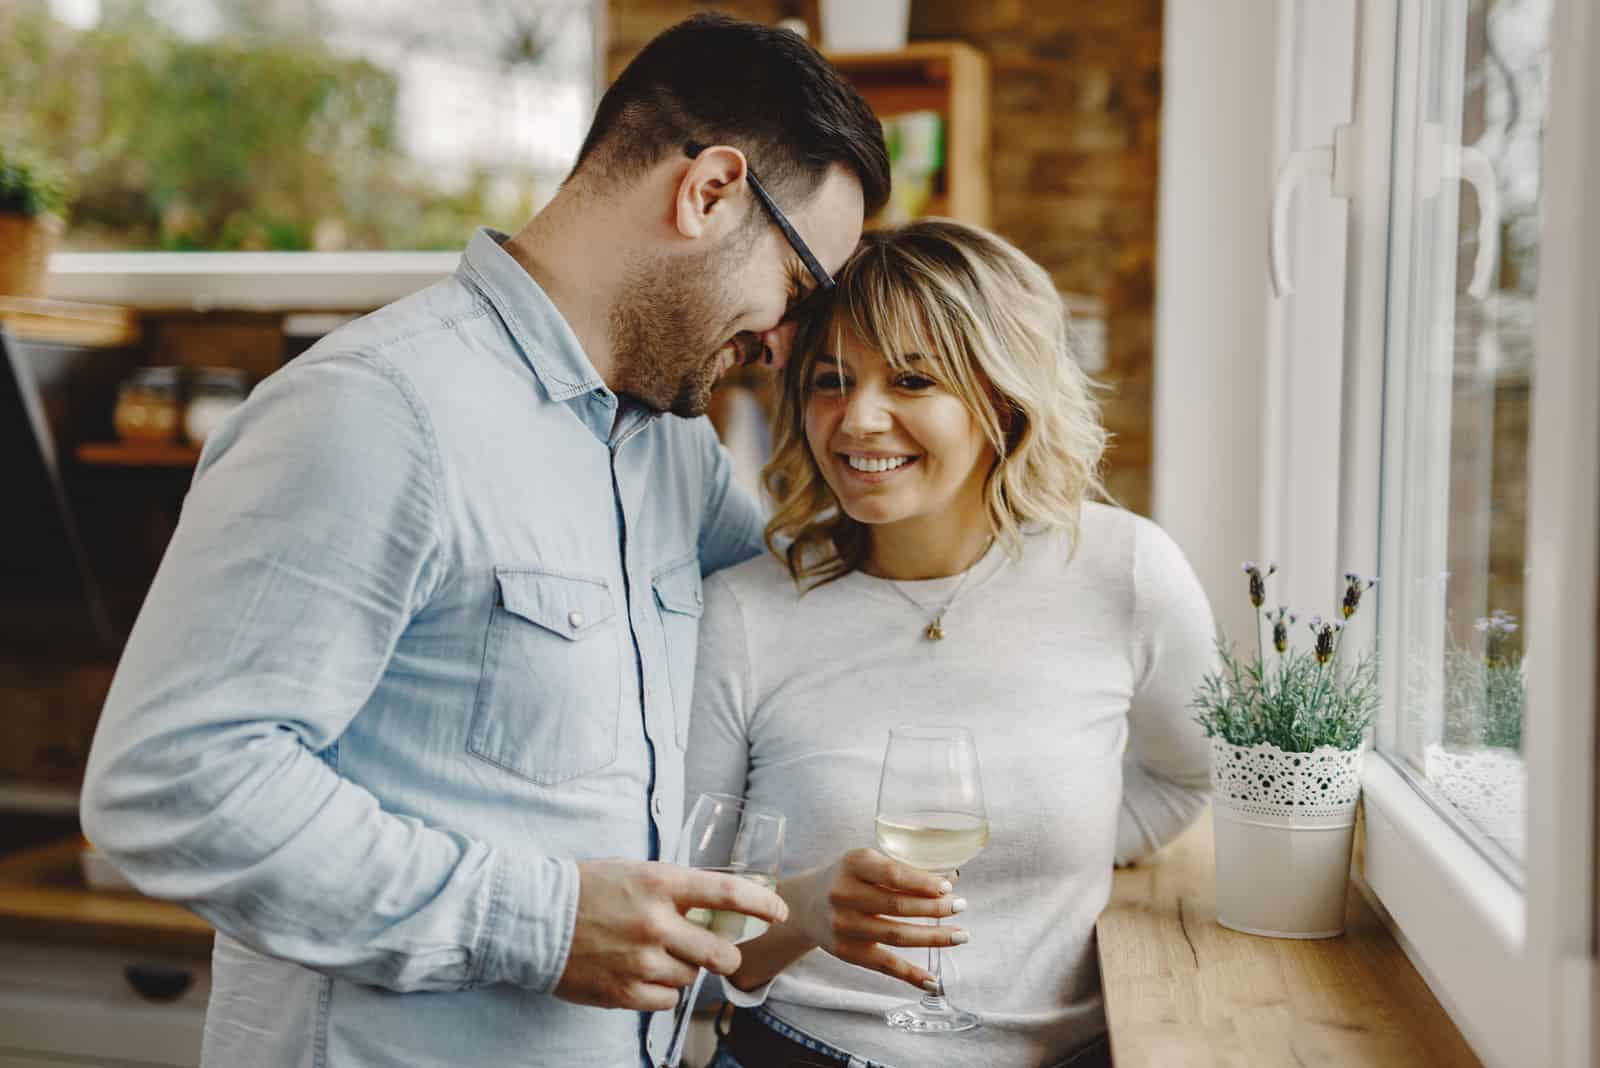 Happy couple in love drinking wine by the window in the kitchen